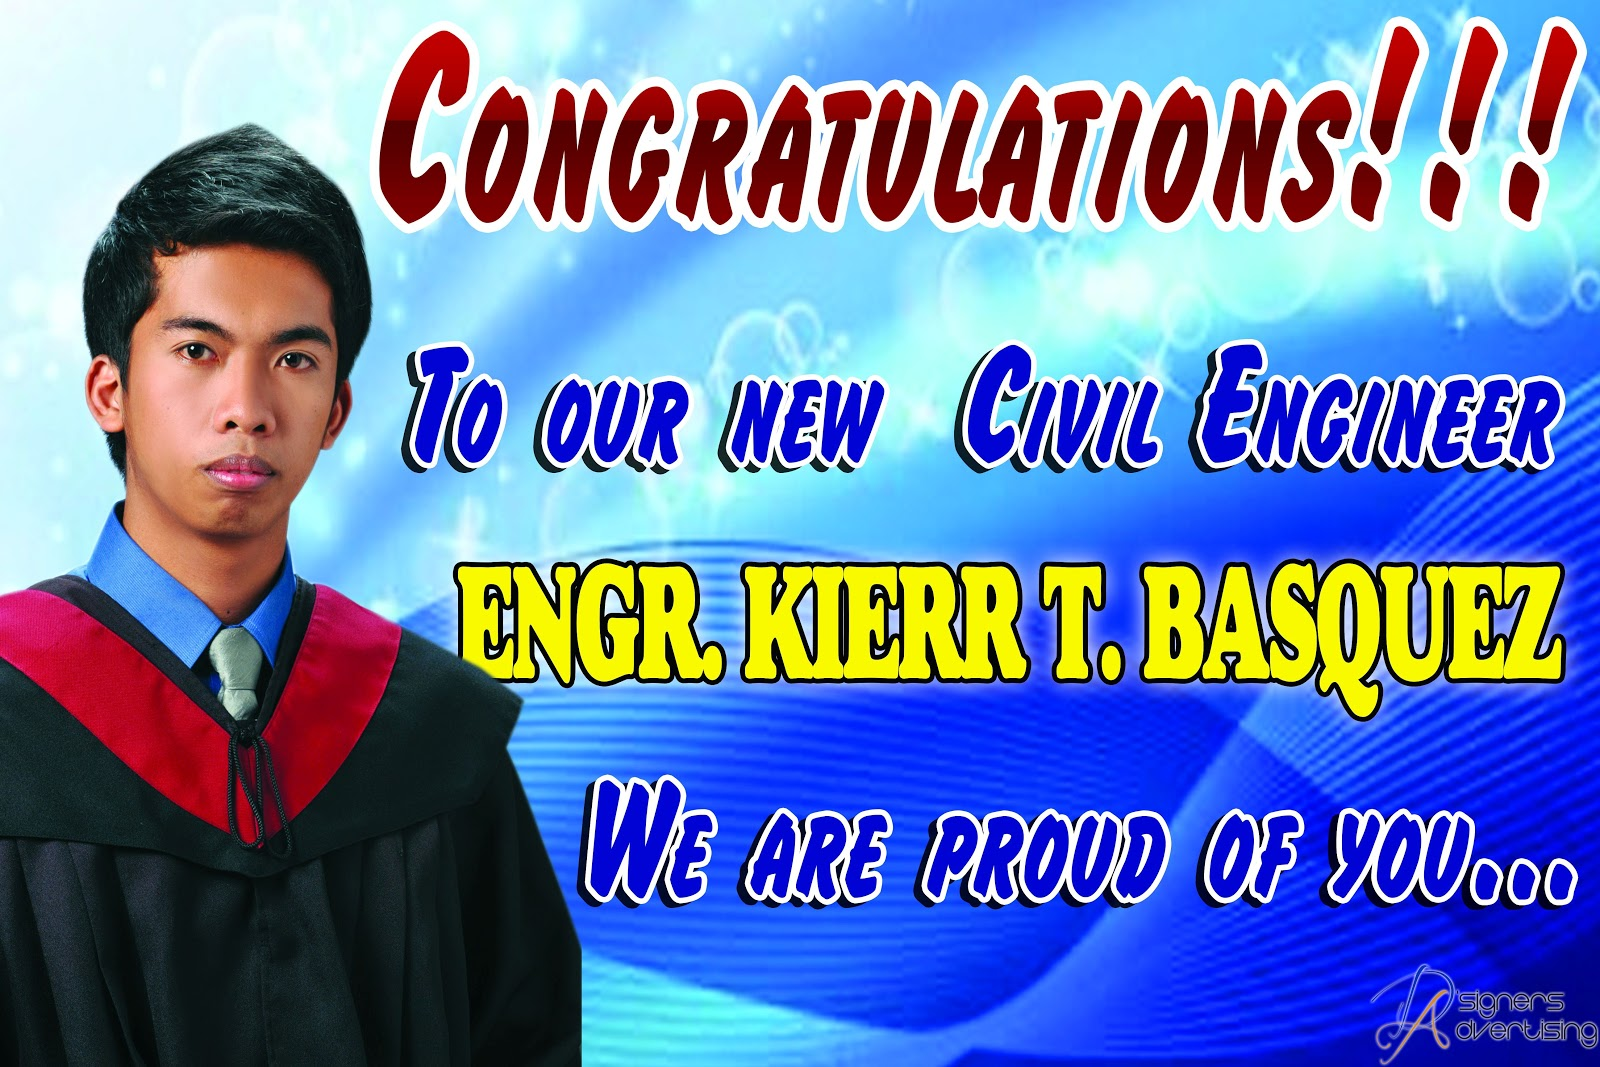 D\'Signers Advertising: Congratulations to Engr. Kierr T. Basquez